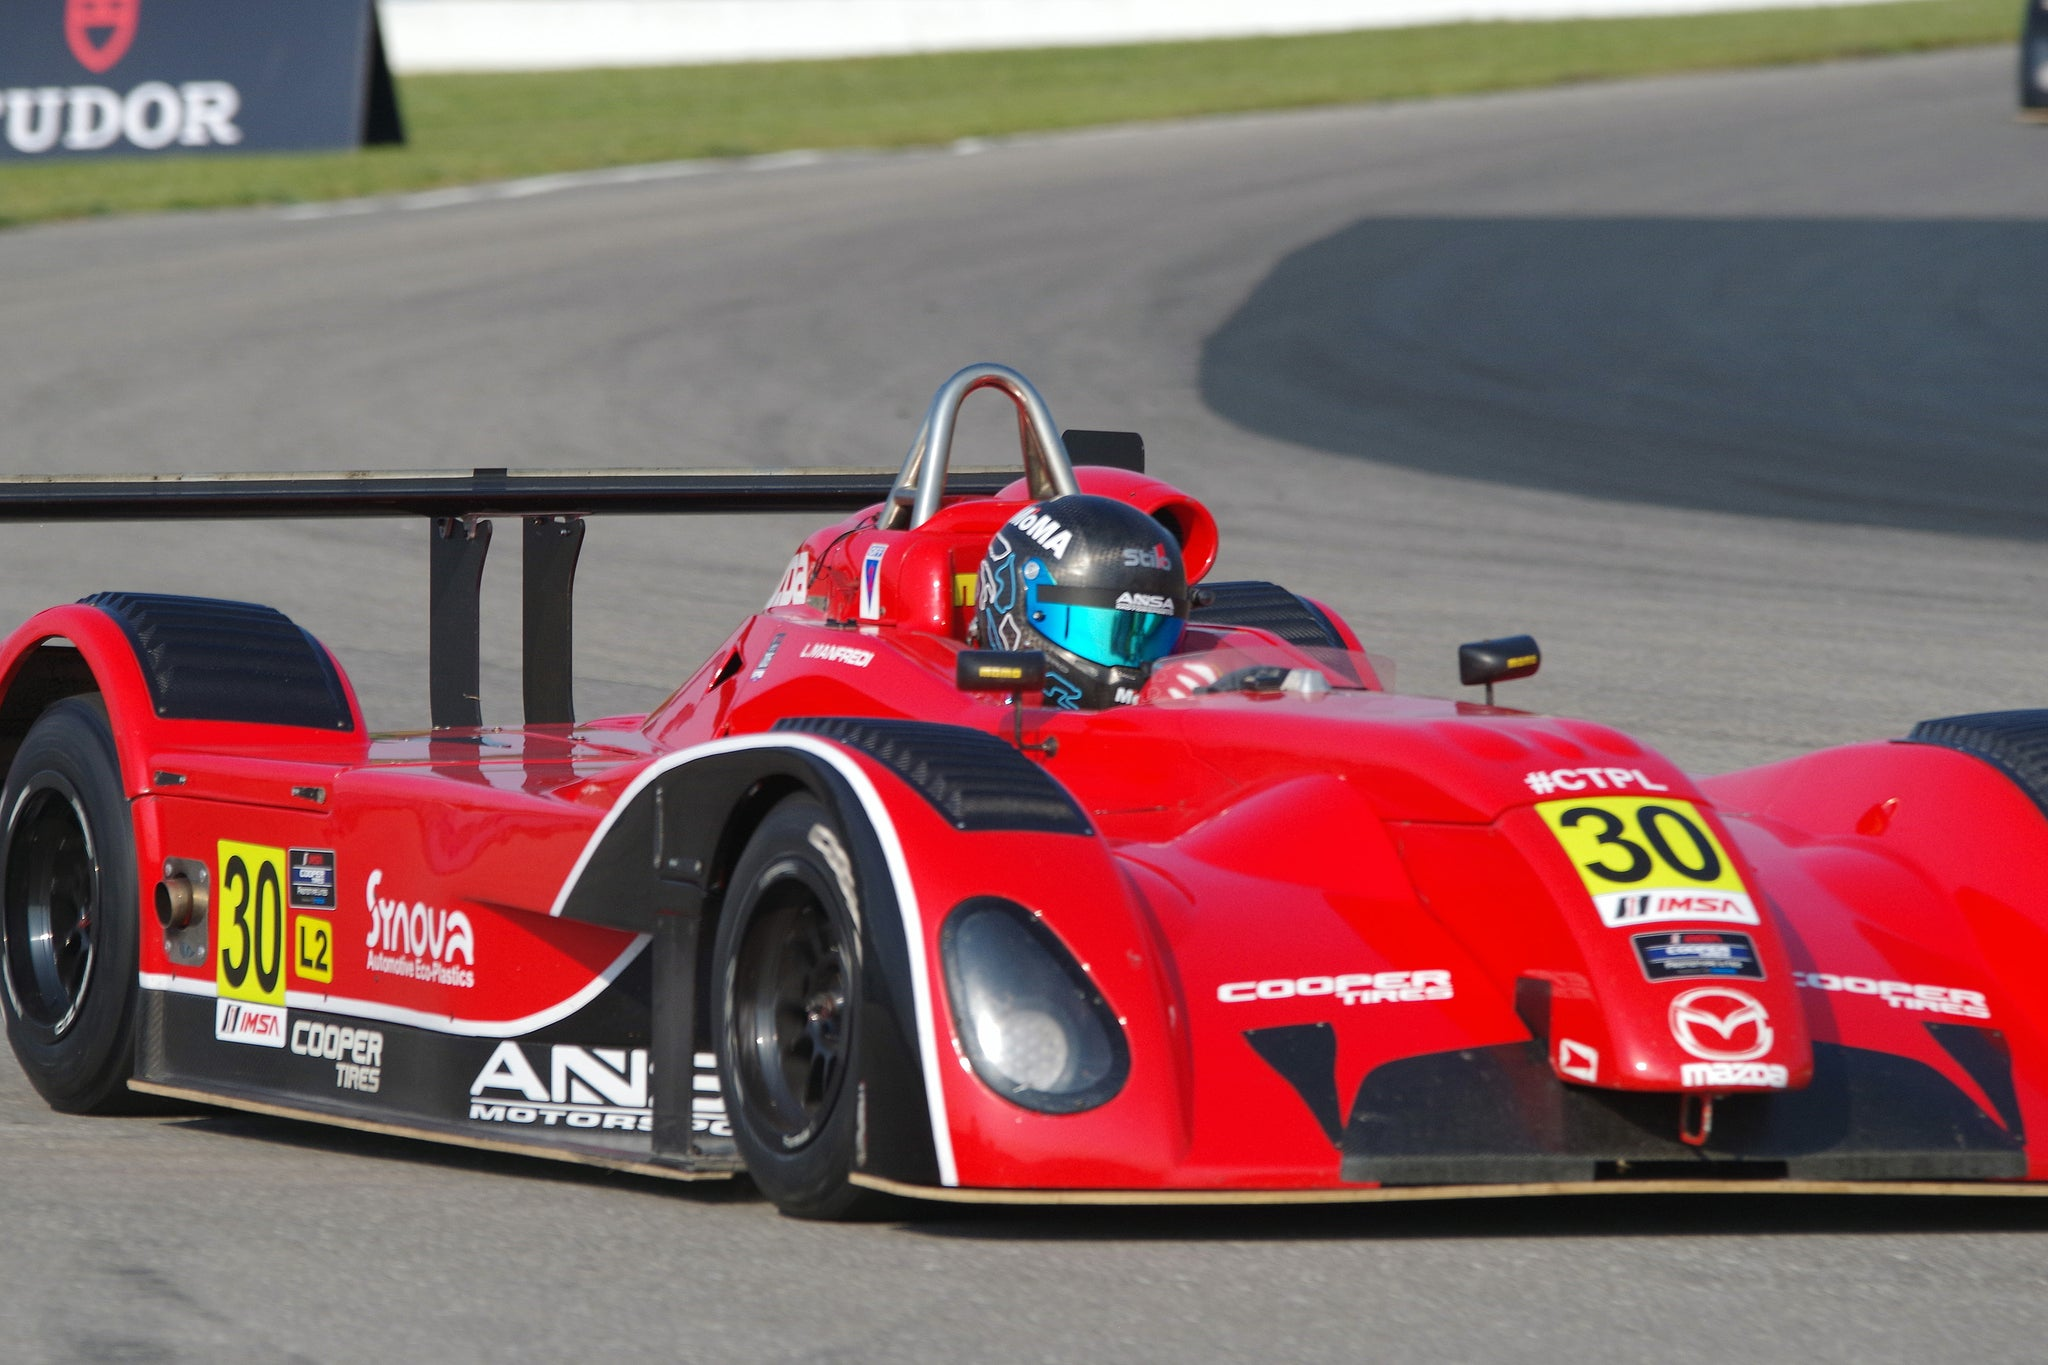 ANSA RACER LUDOVICO MANFREDI LOOKING FOR ANOTHER STRONG RESULT AT ROAD AMERICA